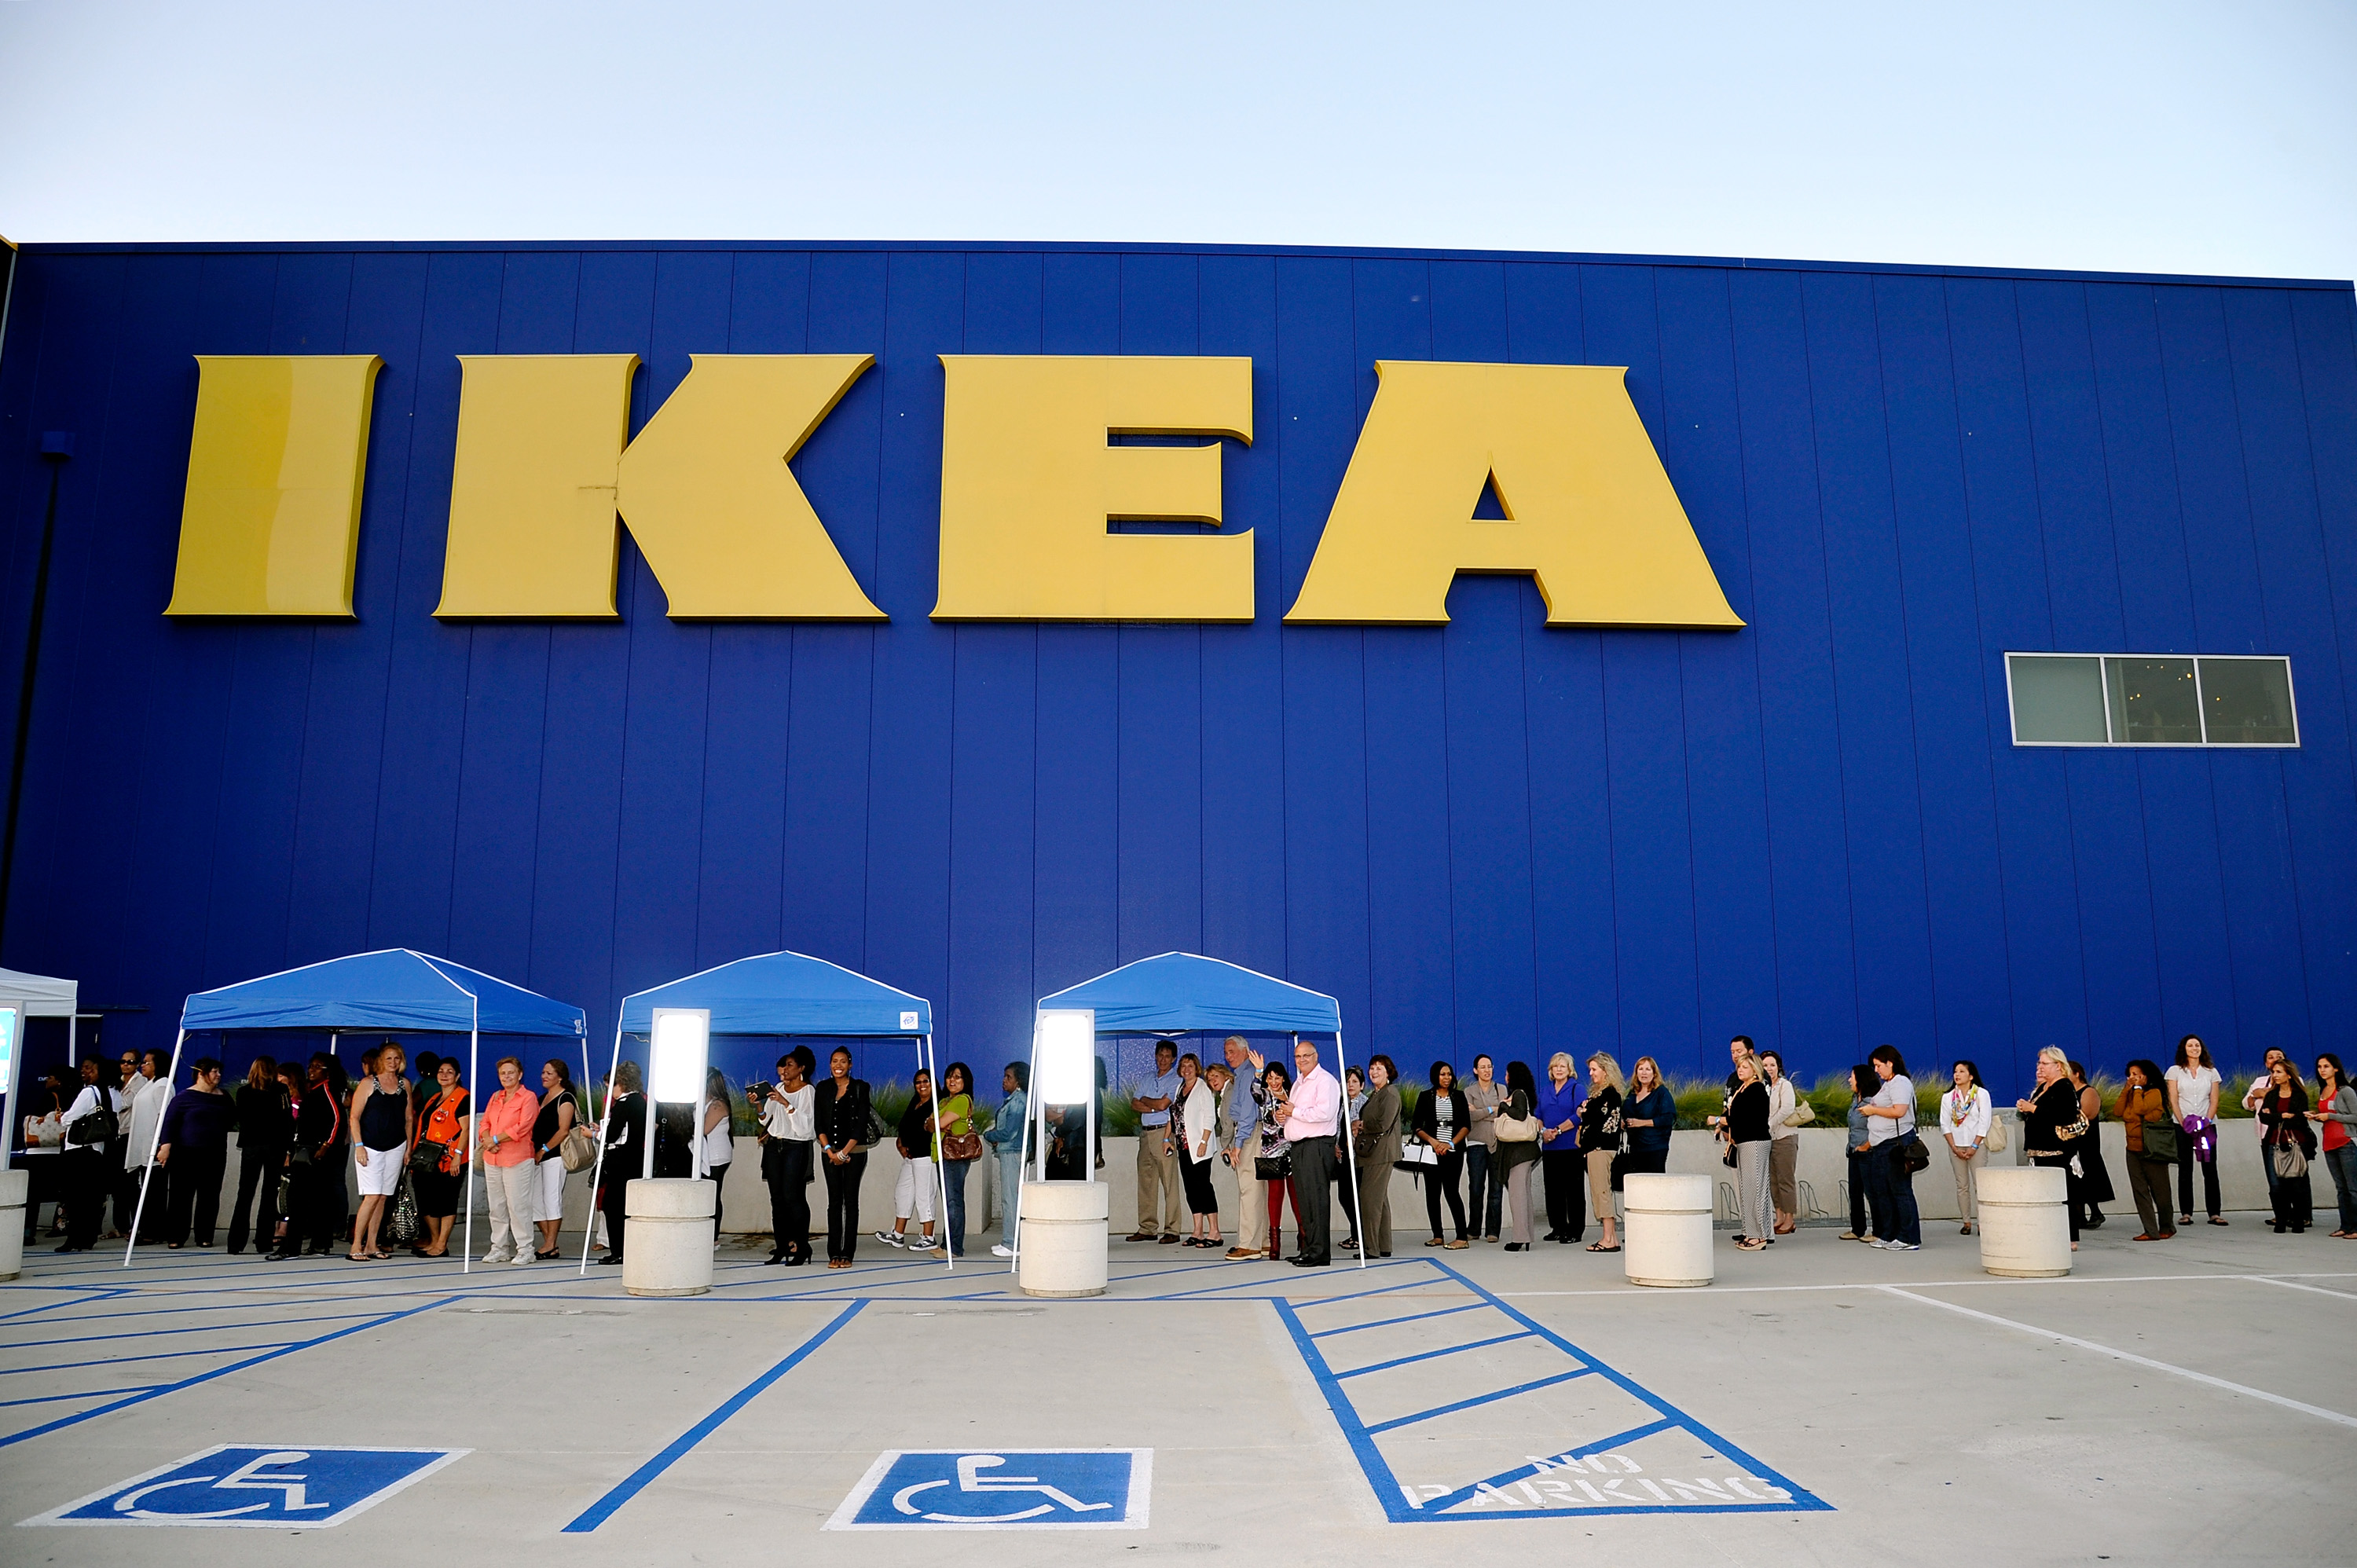 An Ikea store in Covina, Calif.